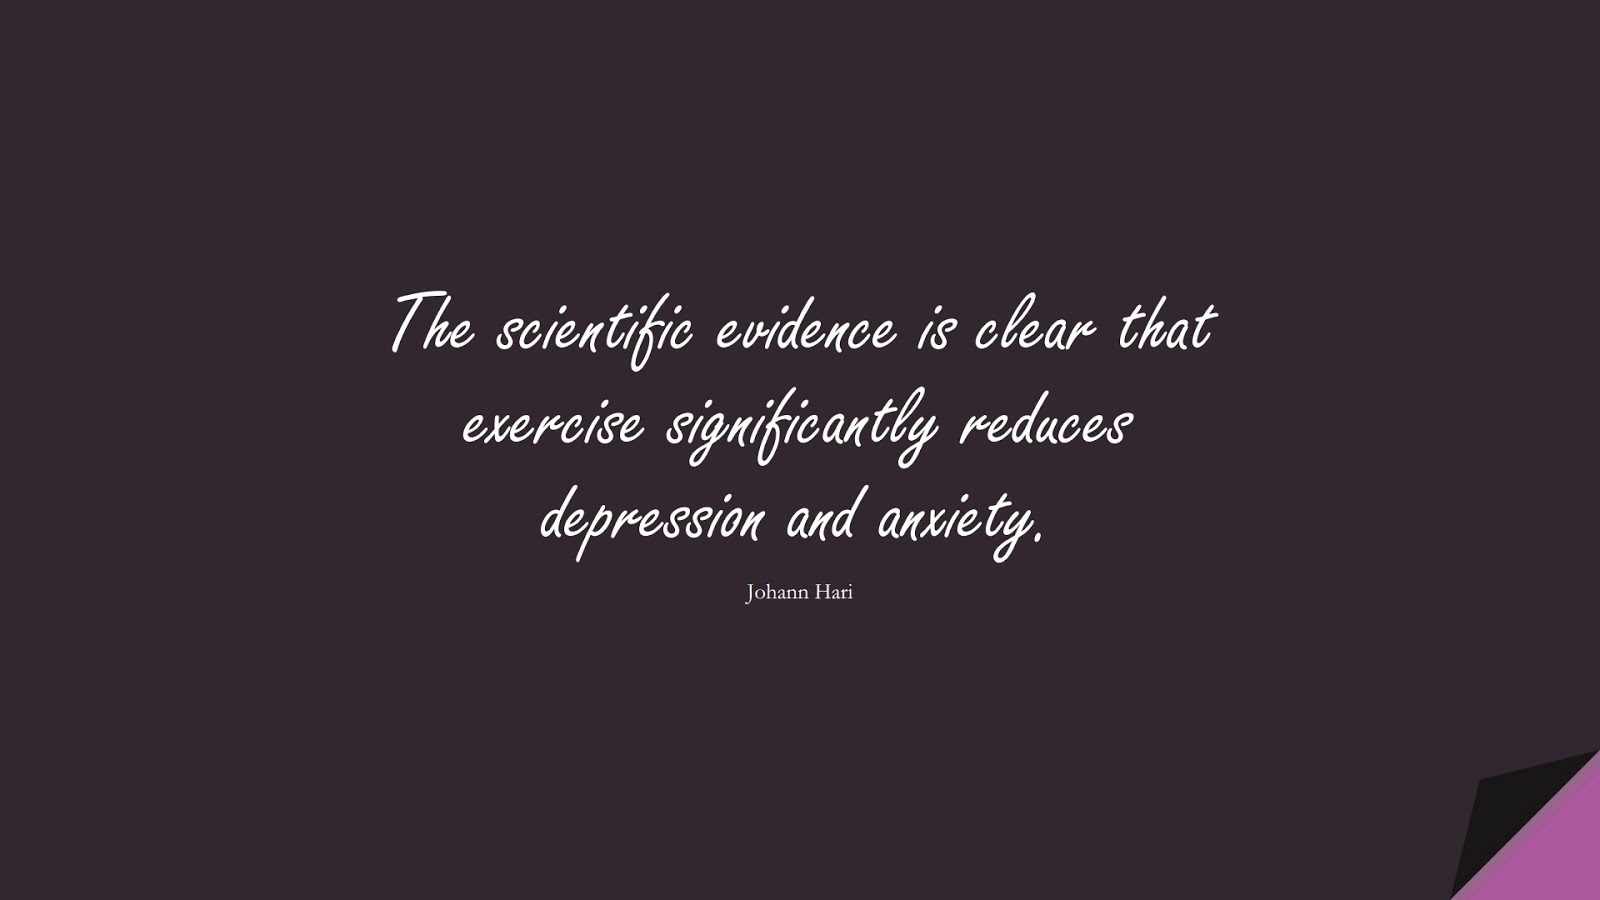 The scientific evidence is clear that exercise significantly reduces depression and anxiety. (Johann Hari);  #DepressionQuotes